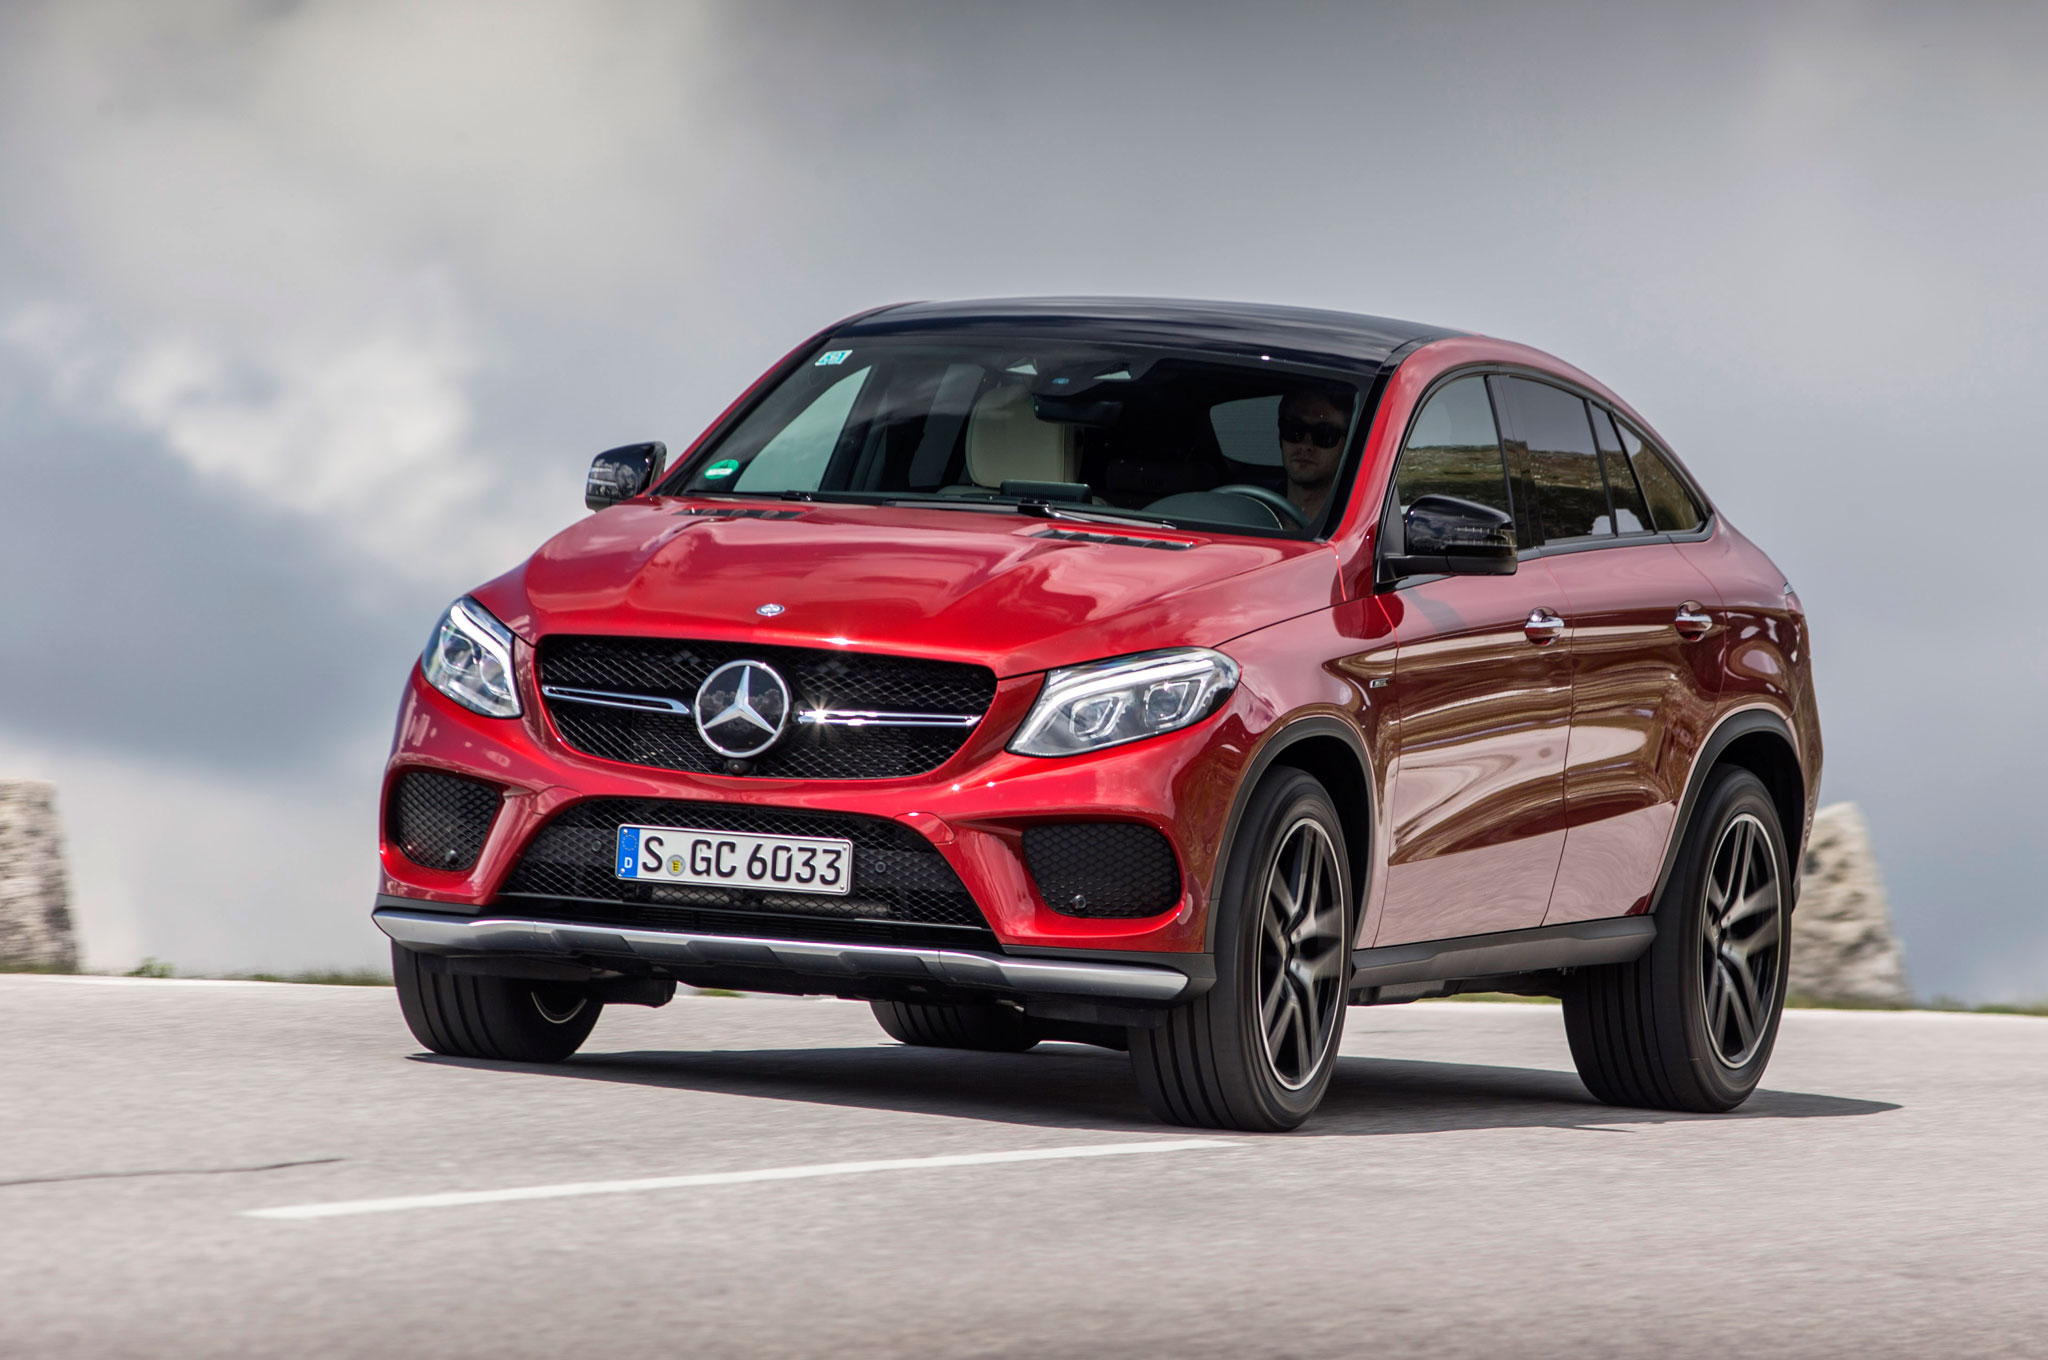 https://st.automobilemag.com/uploads/sites/11/2015/10/2016-Mercedes-Benz-GLE450-AMG-4Matic-Coupe-front-three-quarter-in-motion-09.jpg